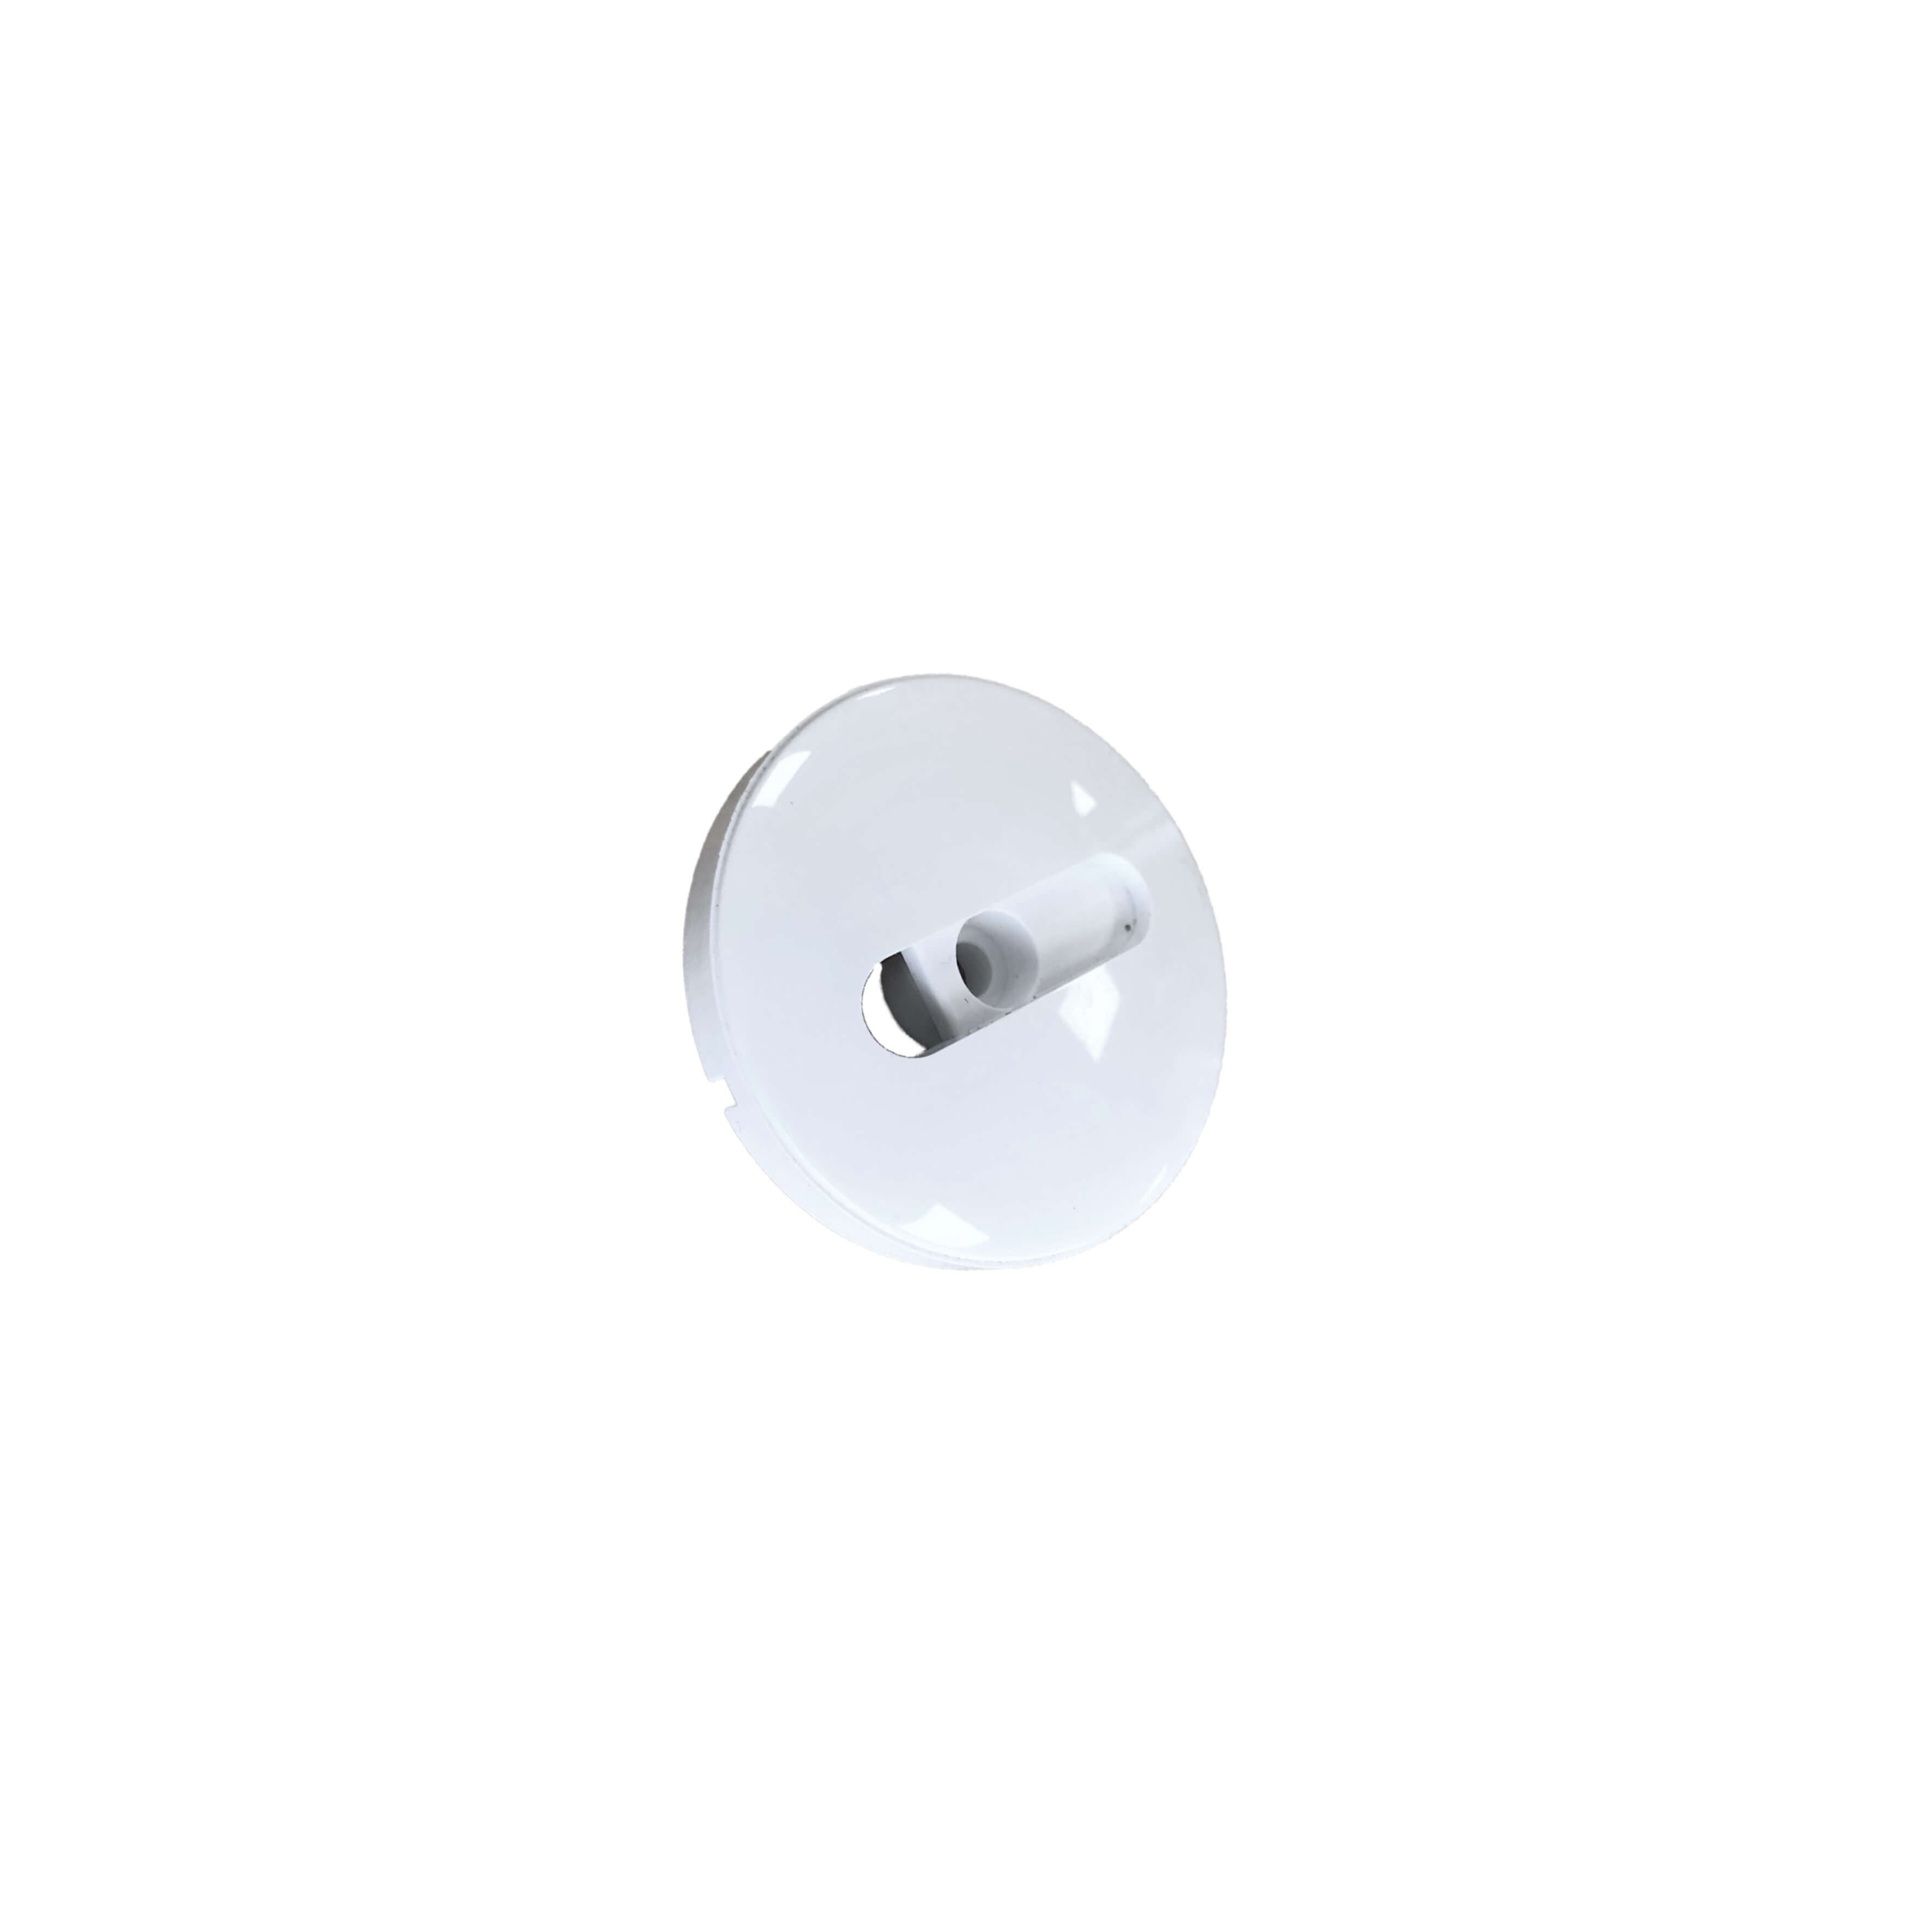 Aqualisa 213026 Cover White